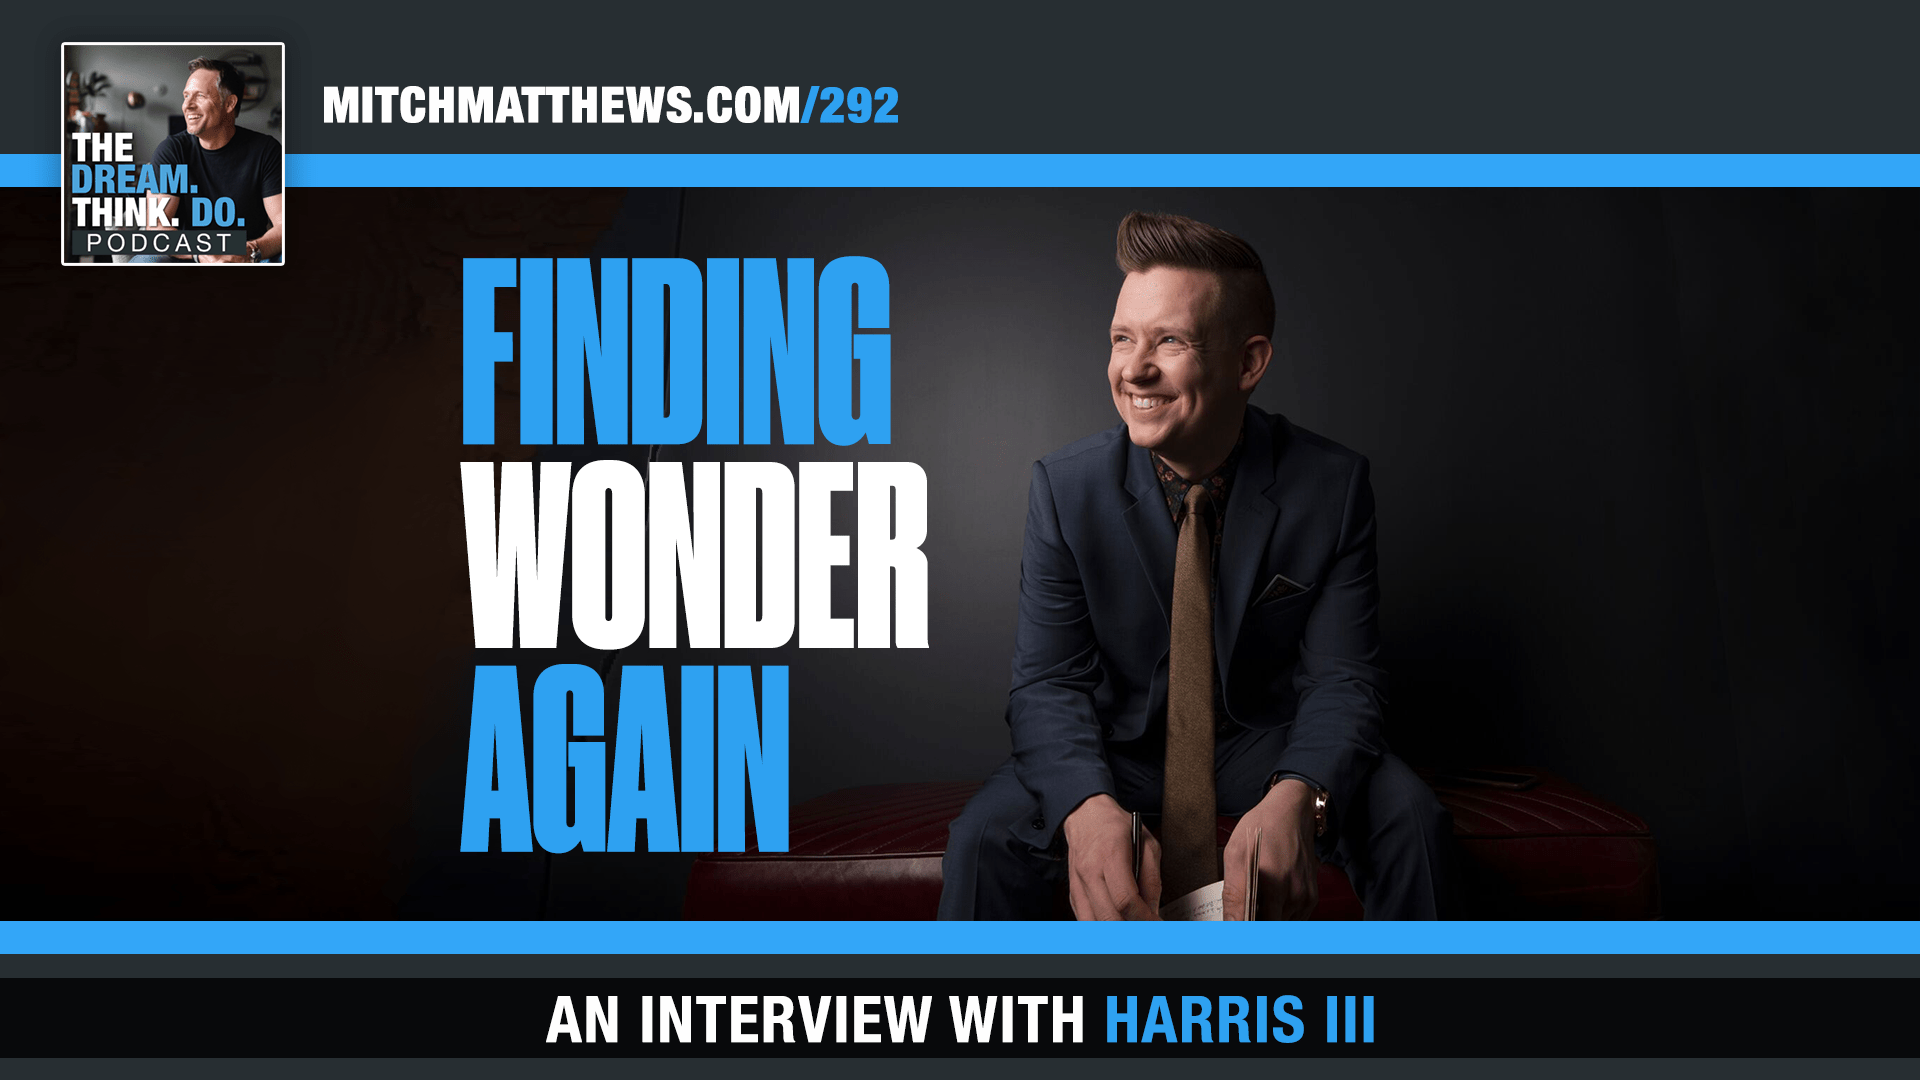 Harris III Finding Wonder Again